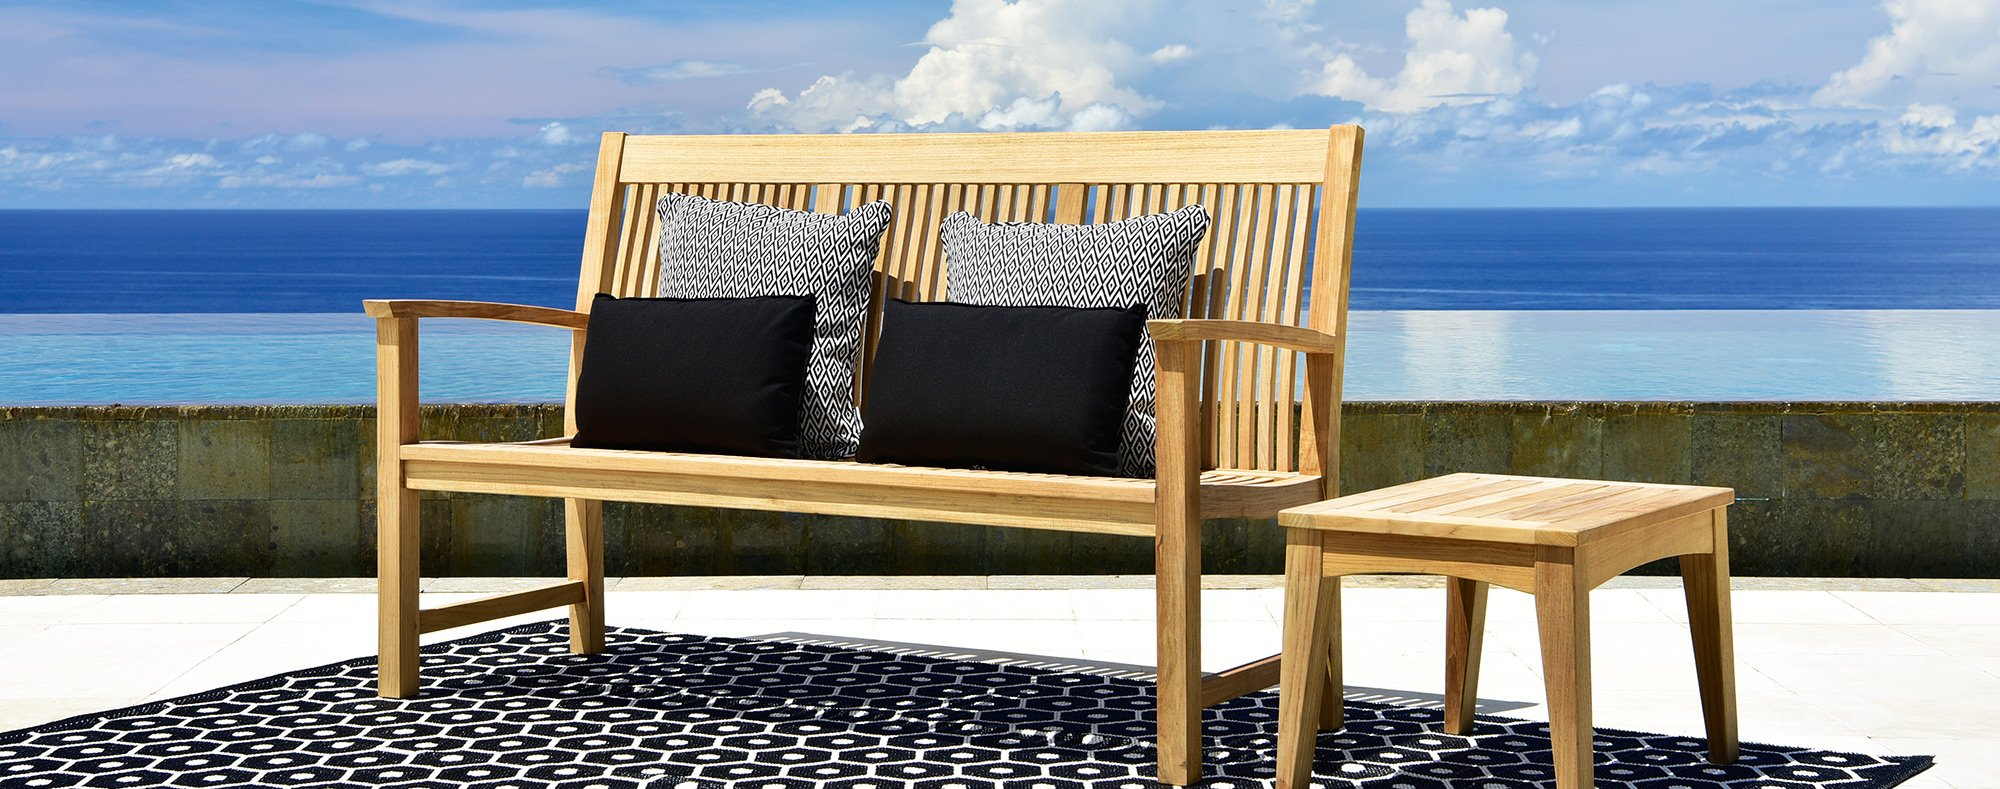 Luxury Outdoor Seating Ideas for the Contemporary Garden